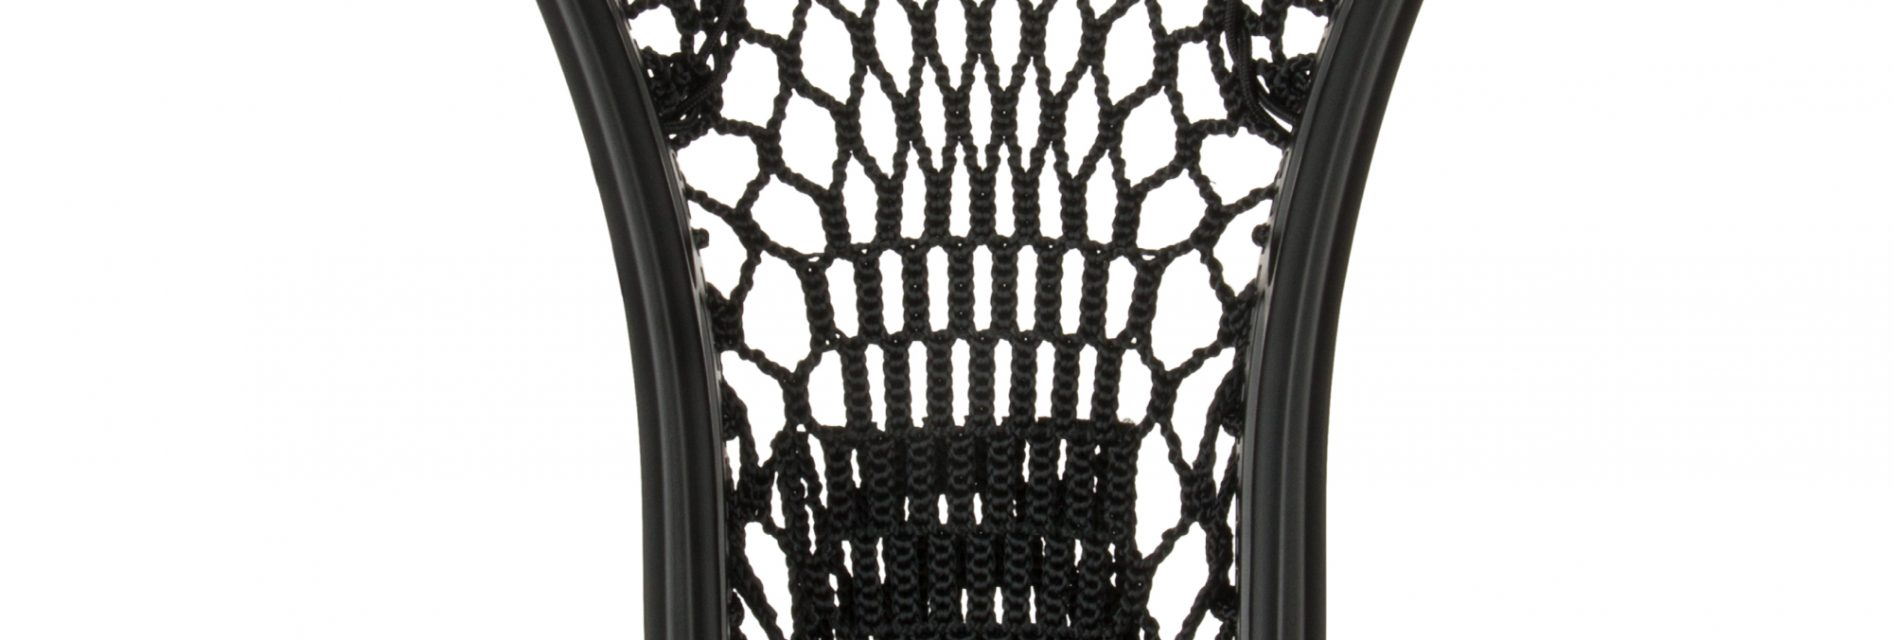 StringKing Women's Type W Lacrosse Mesh Head Face Channel Feature Mid Section Black